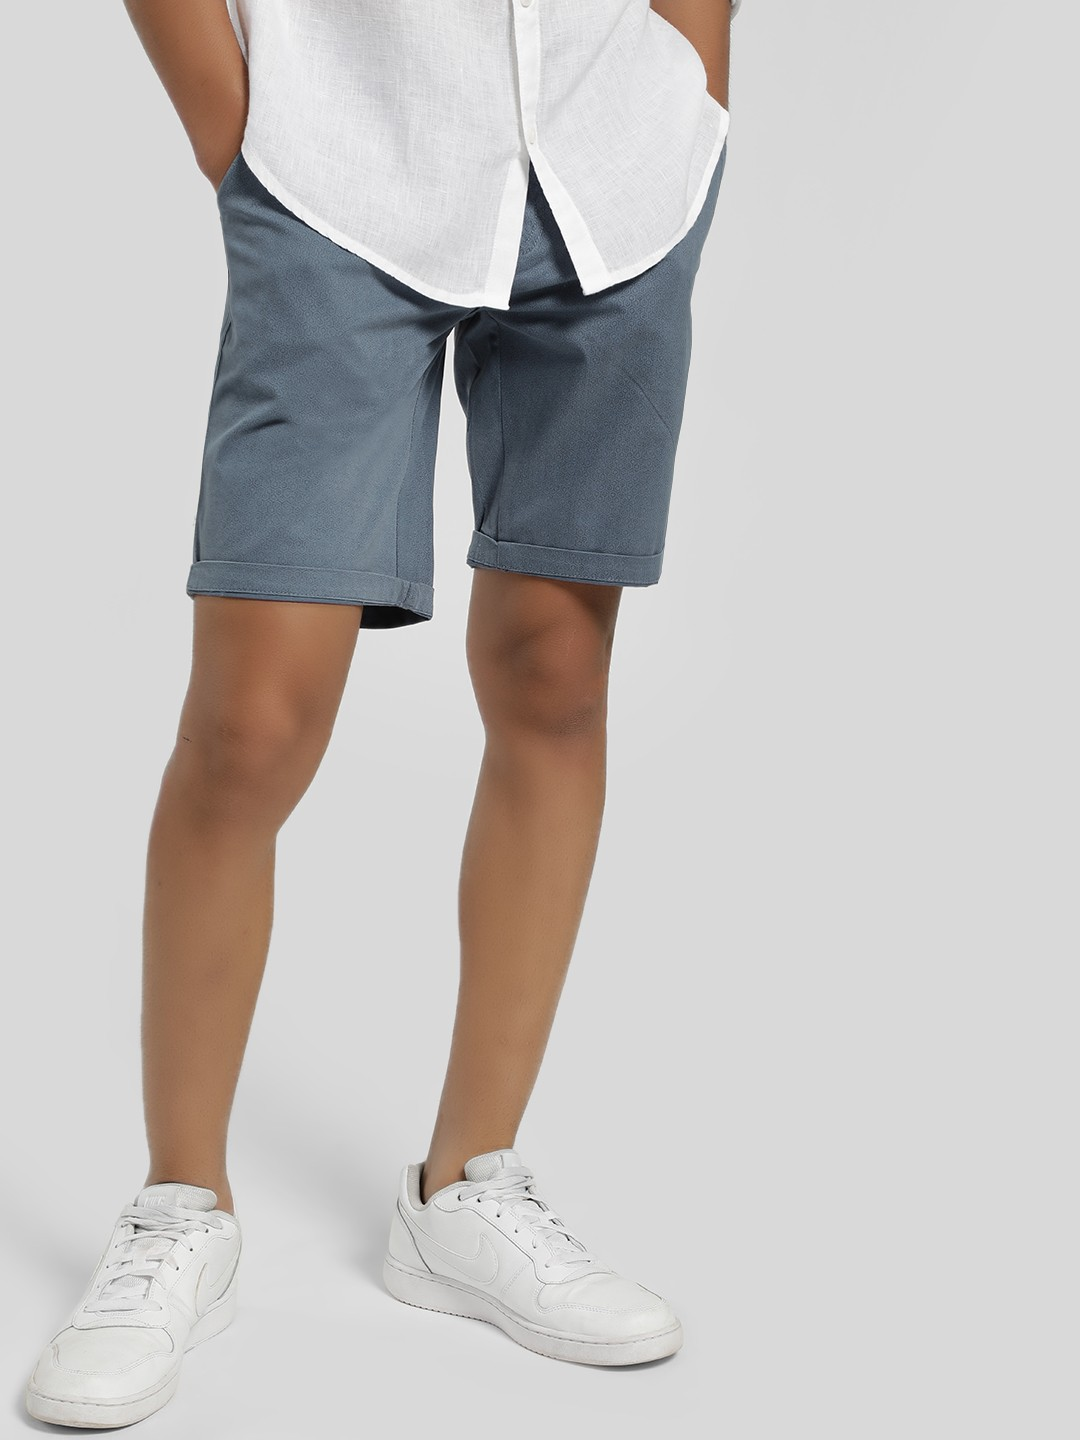 Lee Cooper Blue All Over Print Shorts 1